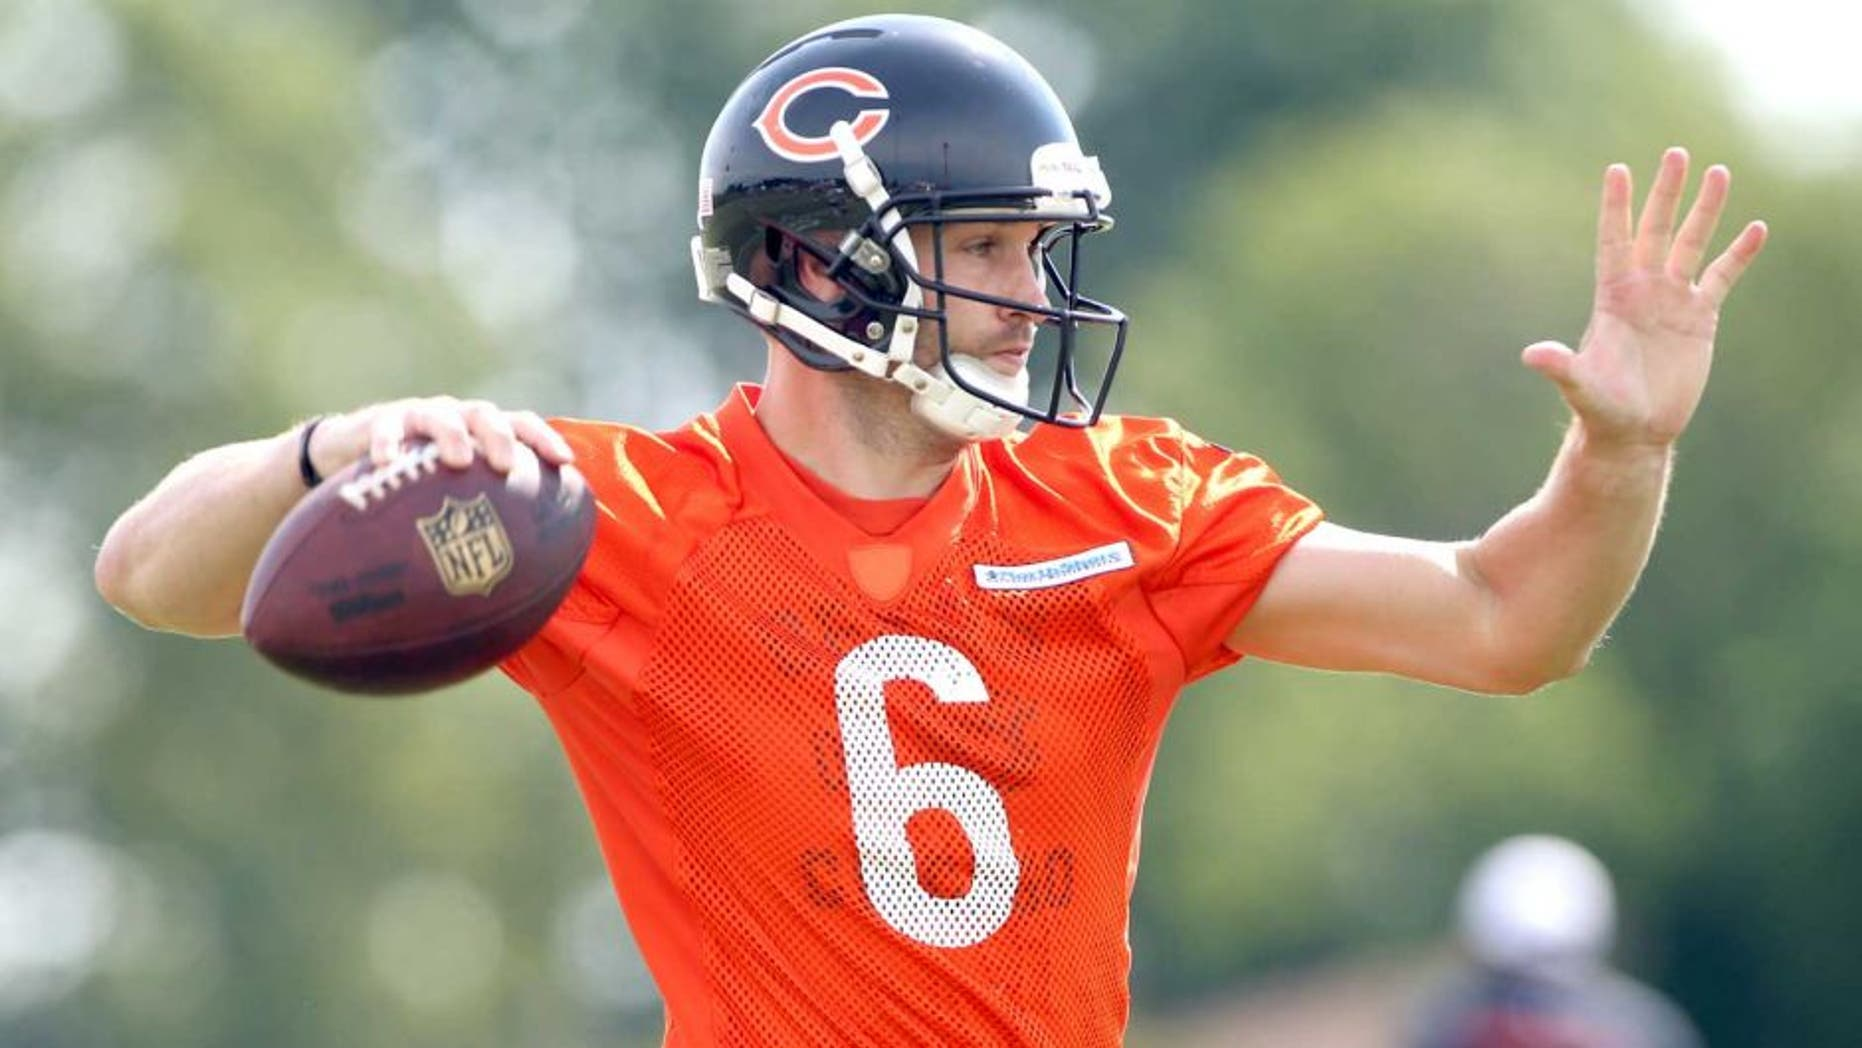 Jul 25, 2014; Chicago, IL, USA; Chicago Bears quarterback Jay Cutler throws a pass during training camp at Olivet Nazarene University. Mandatory Credit: Jerry Lai-USA TODAY Sports